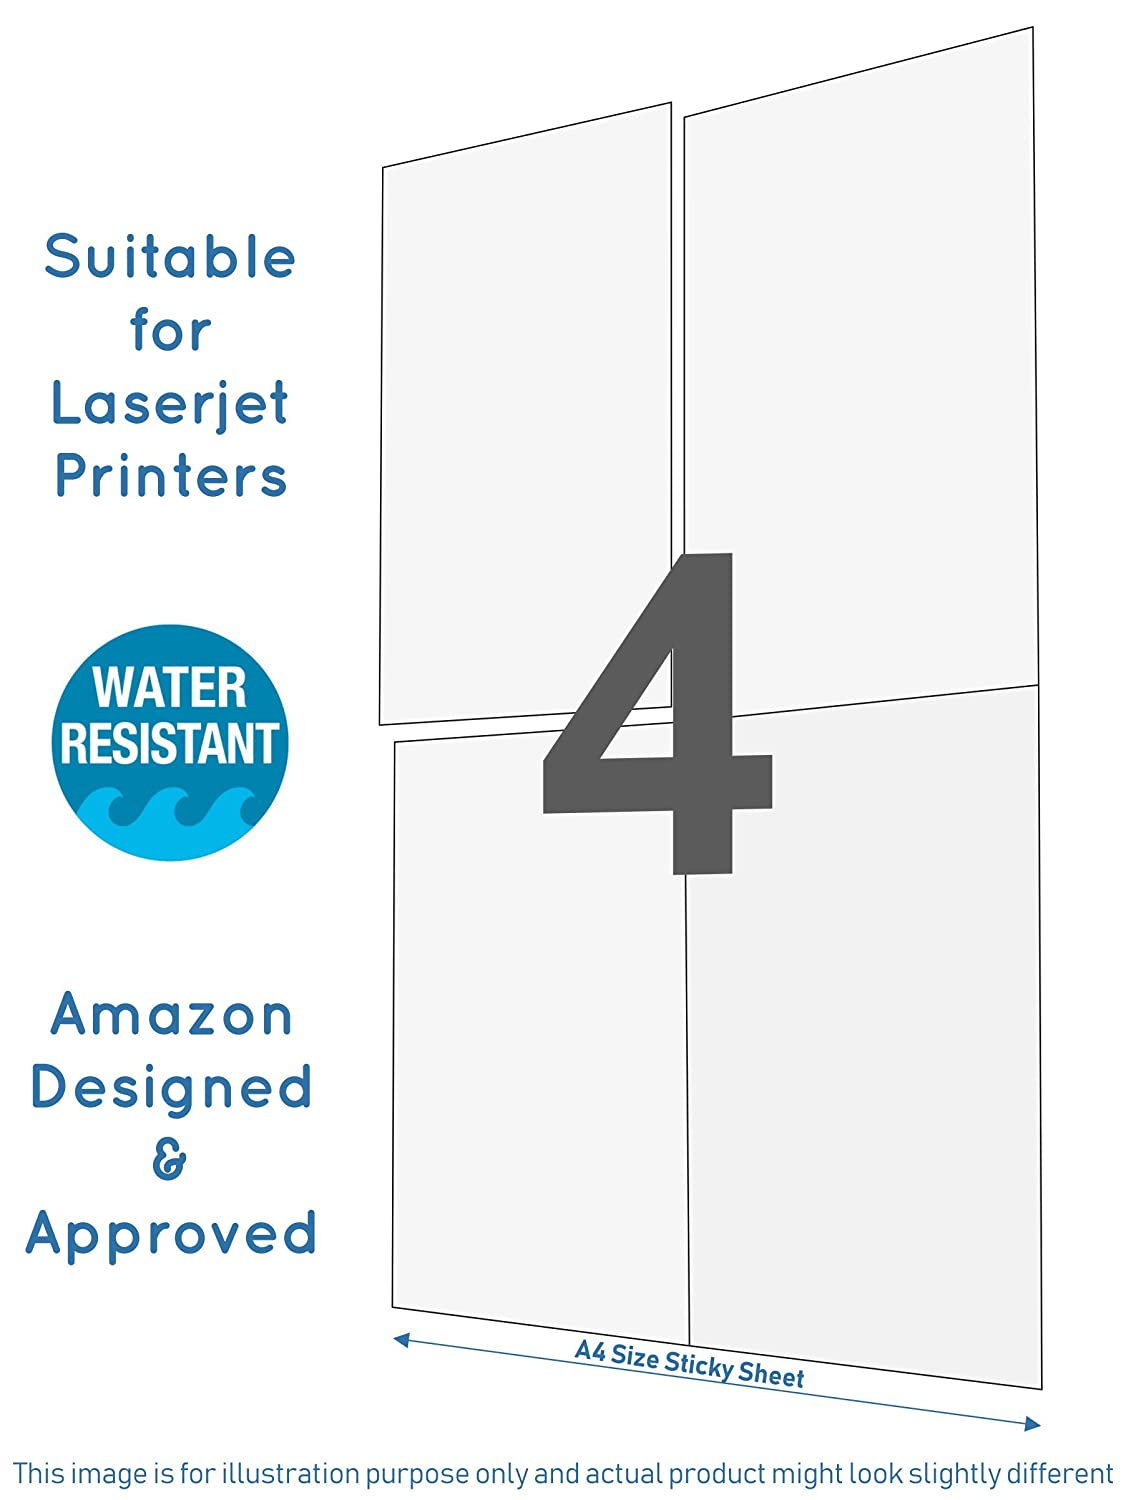 Securement Amazon Easyship Sticky Labels (A4 Size with 4 Pre-Cut  Labels/Sheet) - to Print Easyship Order - Suitable for Laserjet Printers  (100 Sheets)